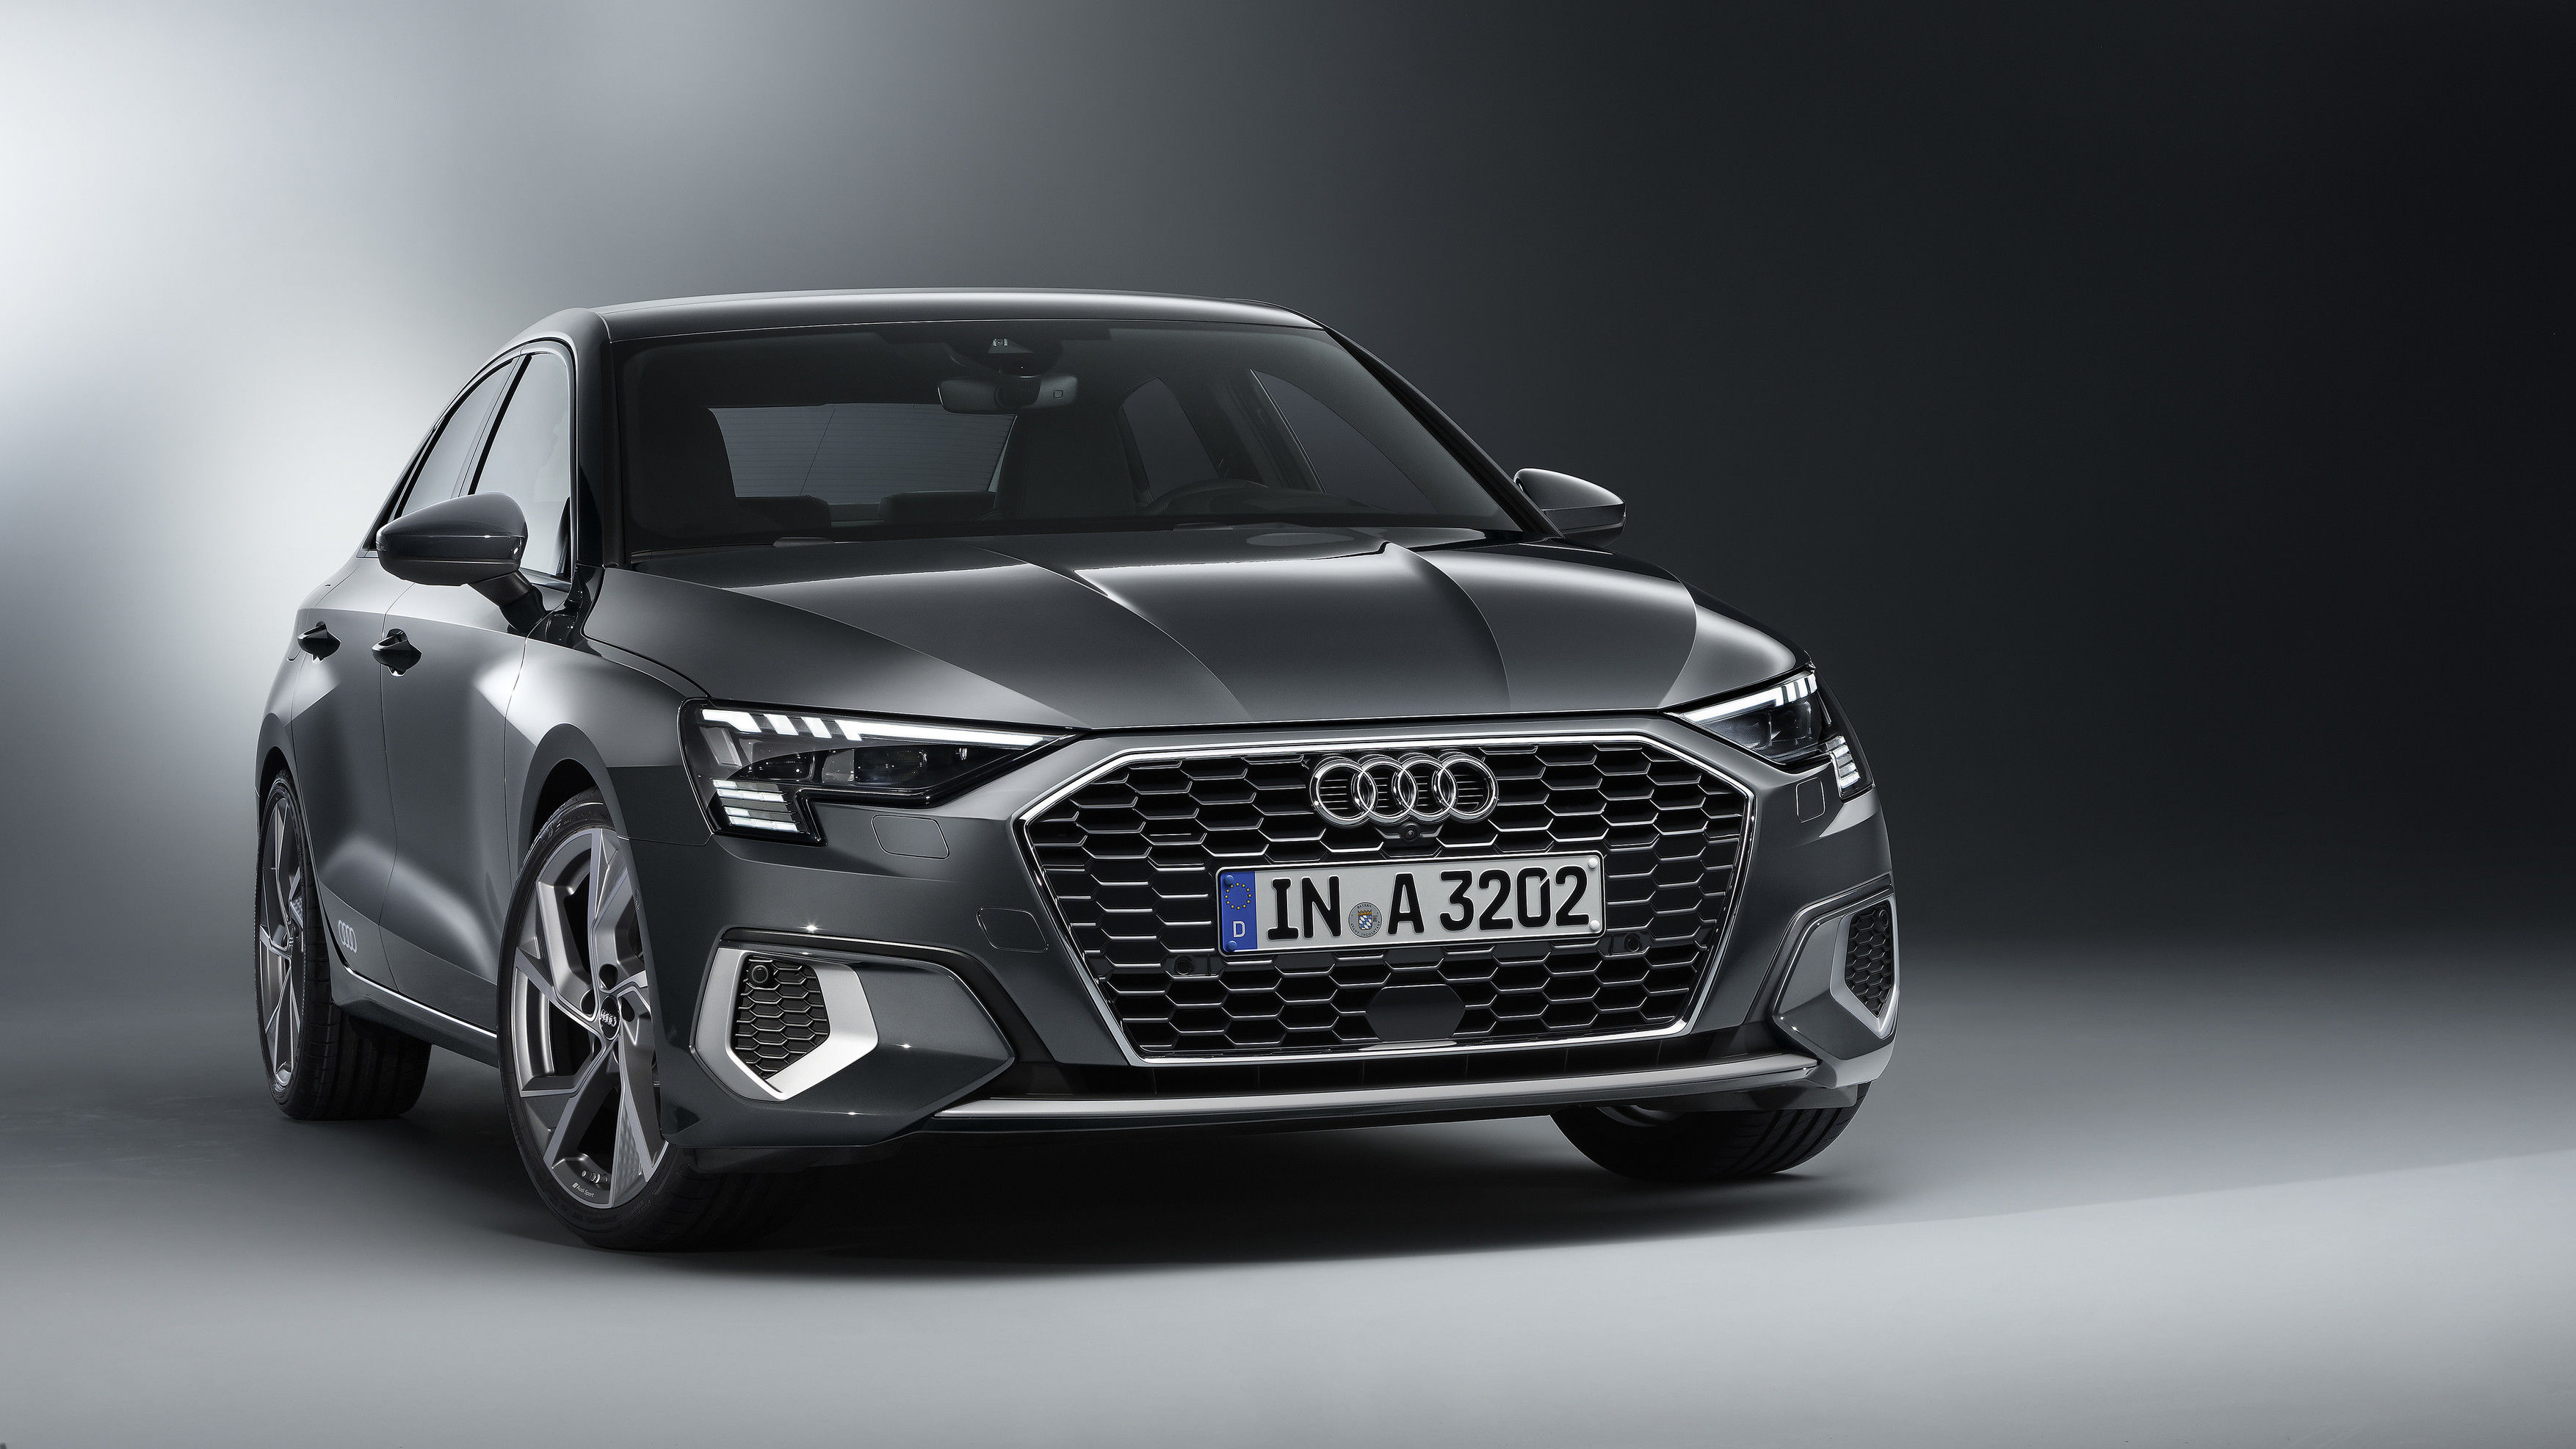 The new A3 looks inspired by the A3 Sportback. It gets a recognisable front with a large single-frame grille and sharply drawn headlights in the top model with Matrix LED technology.